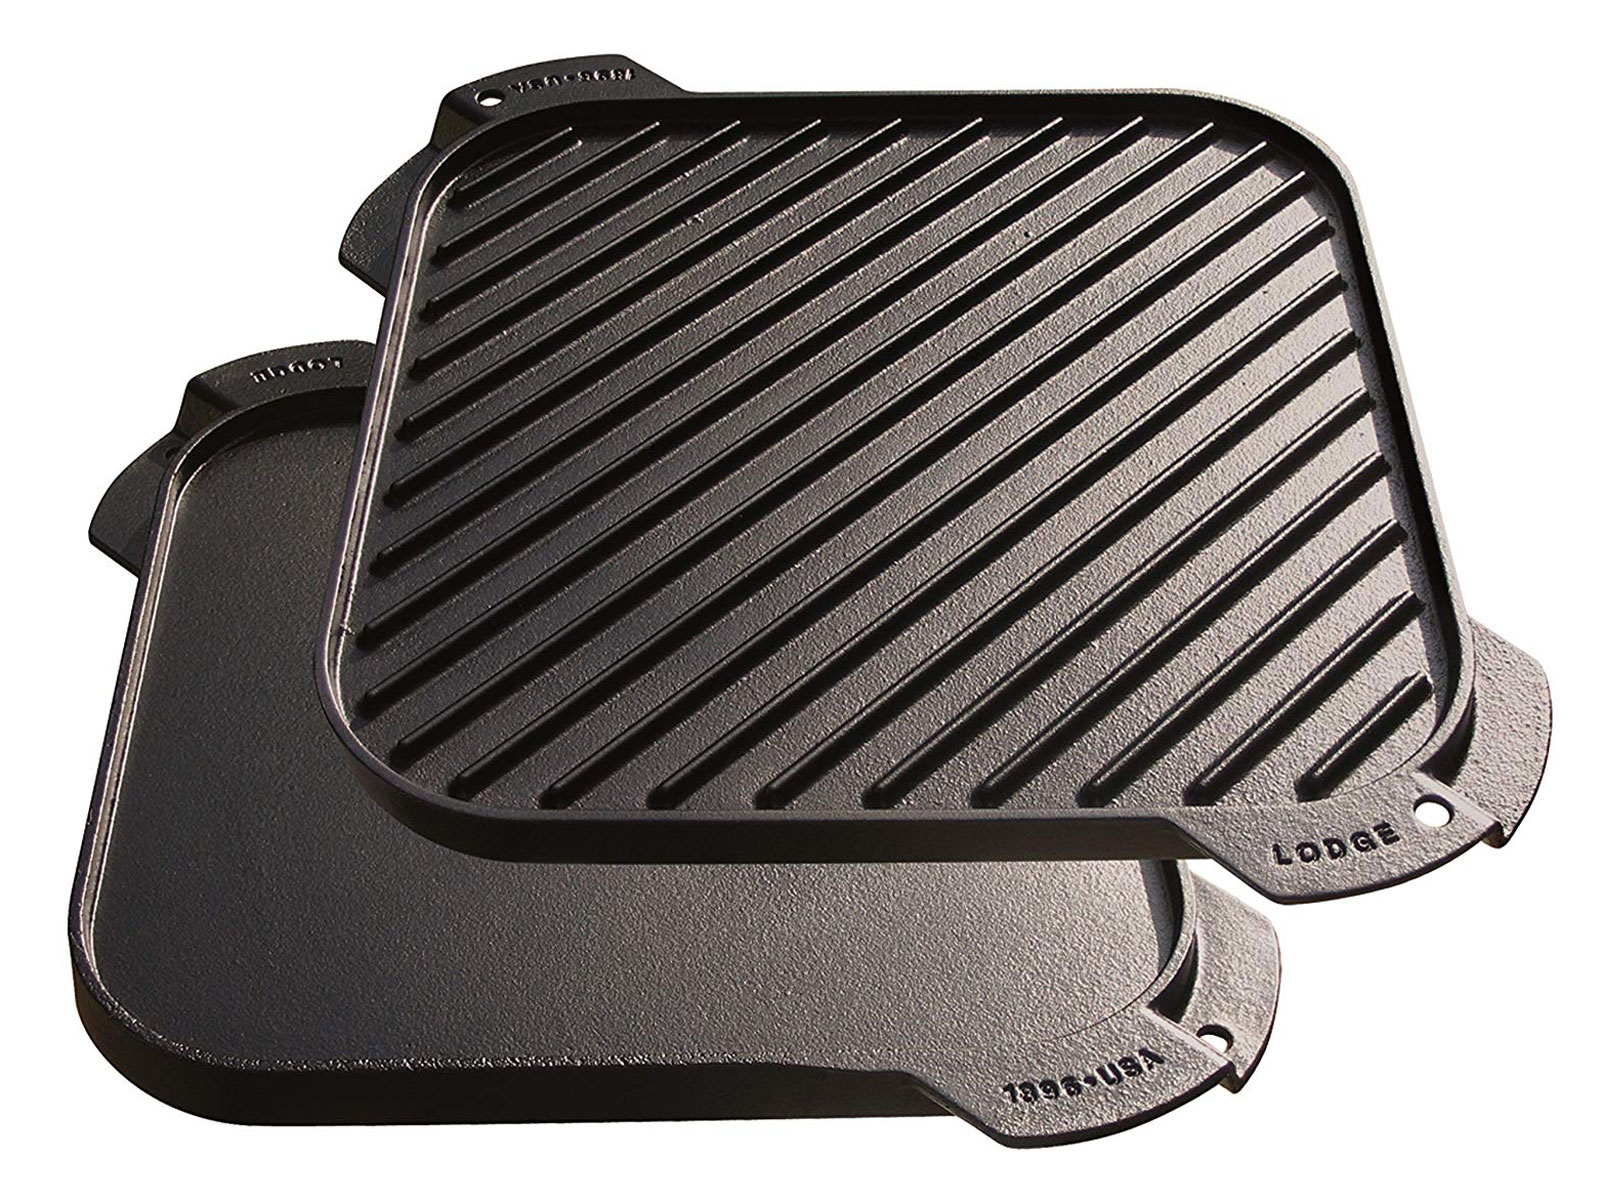 lodge grill pans